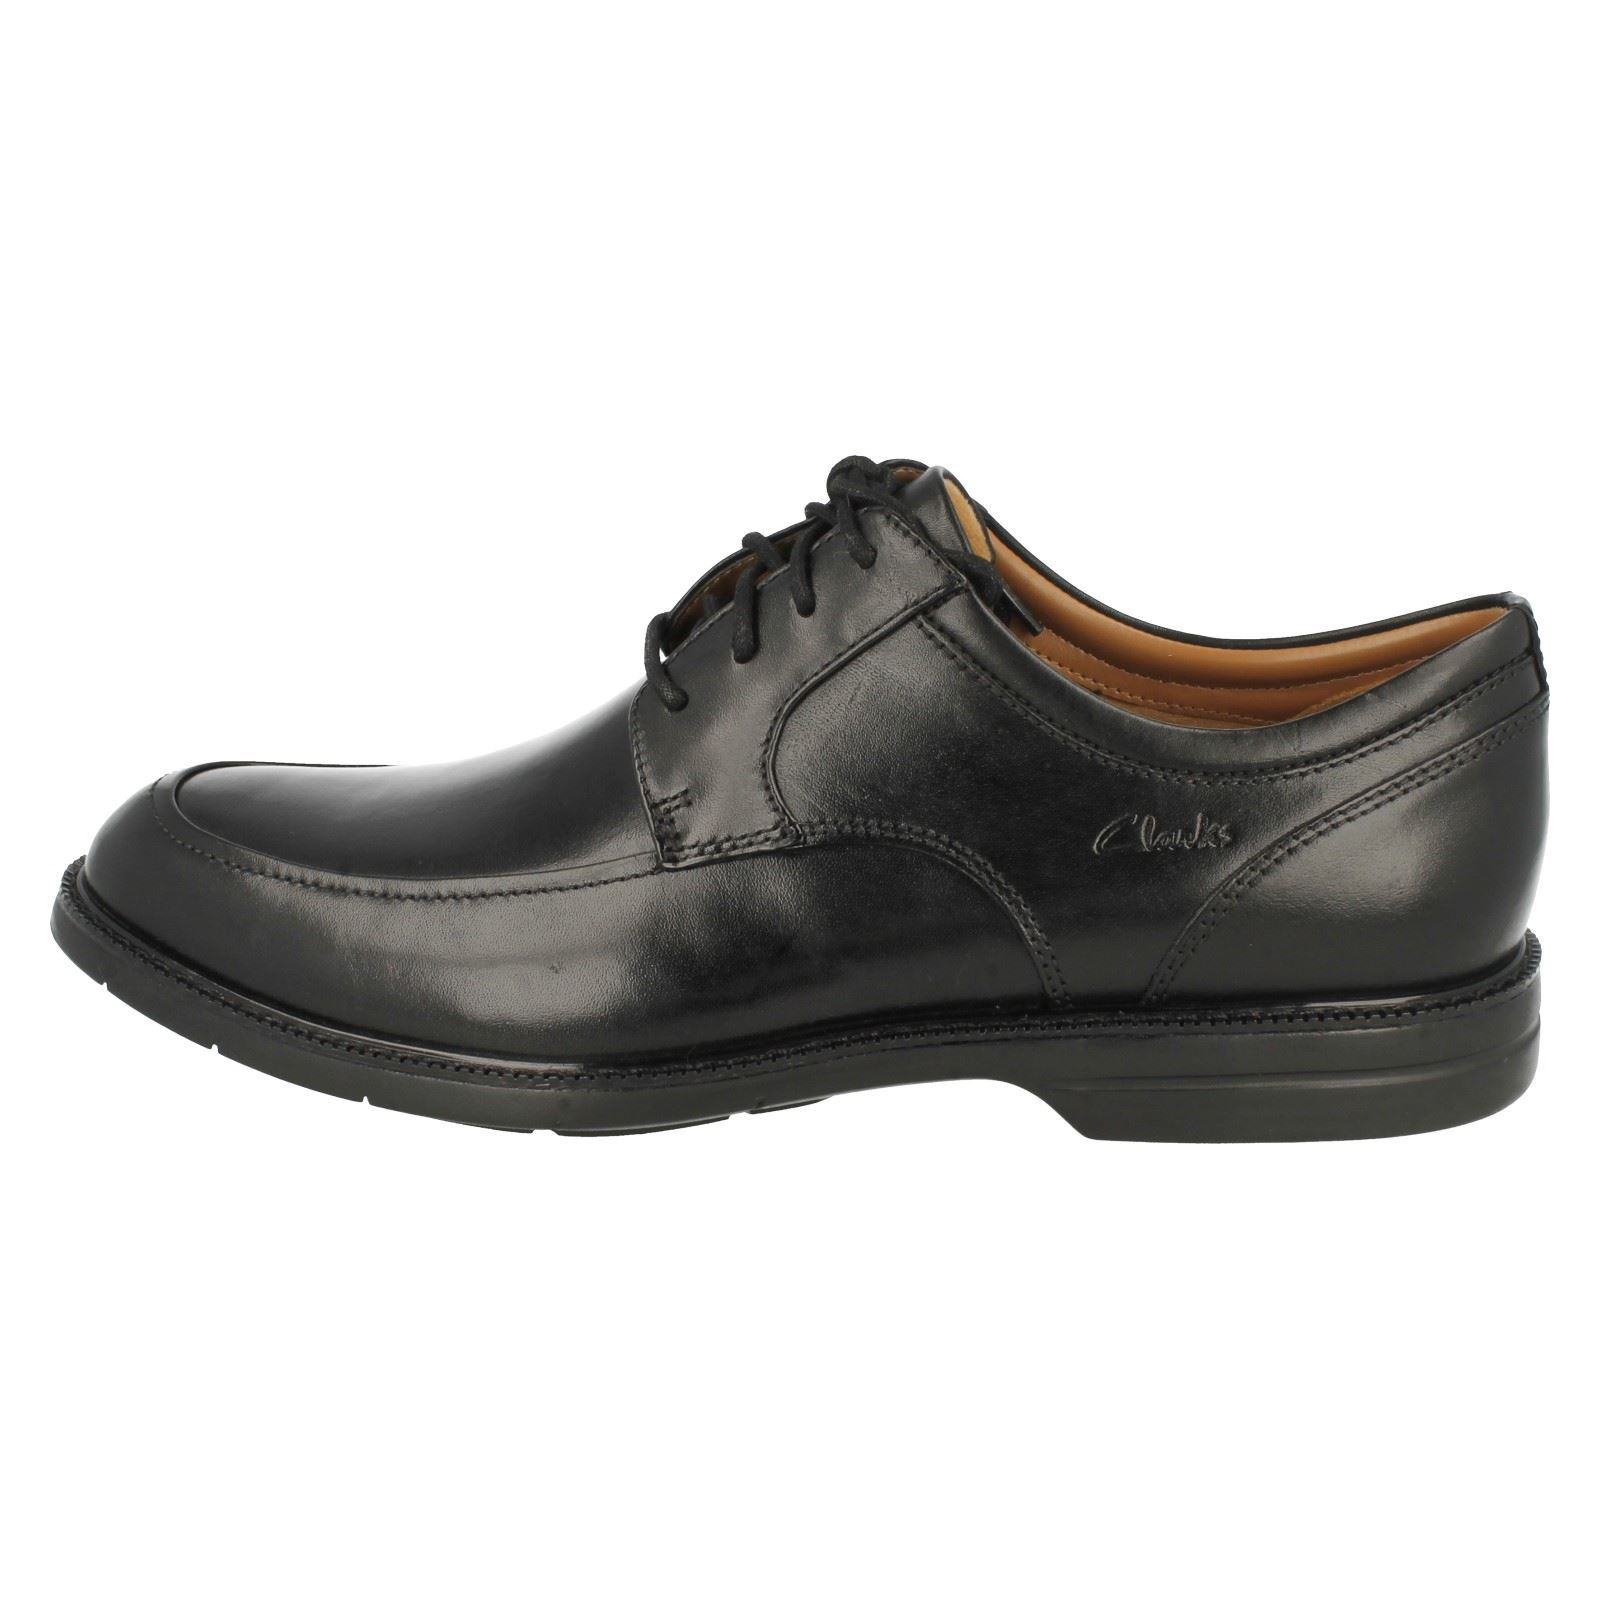 Mens Clarks Style Formal Shoes Style Clarks - Bilton walk 3c2198